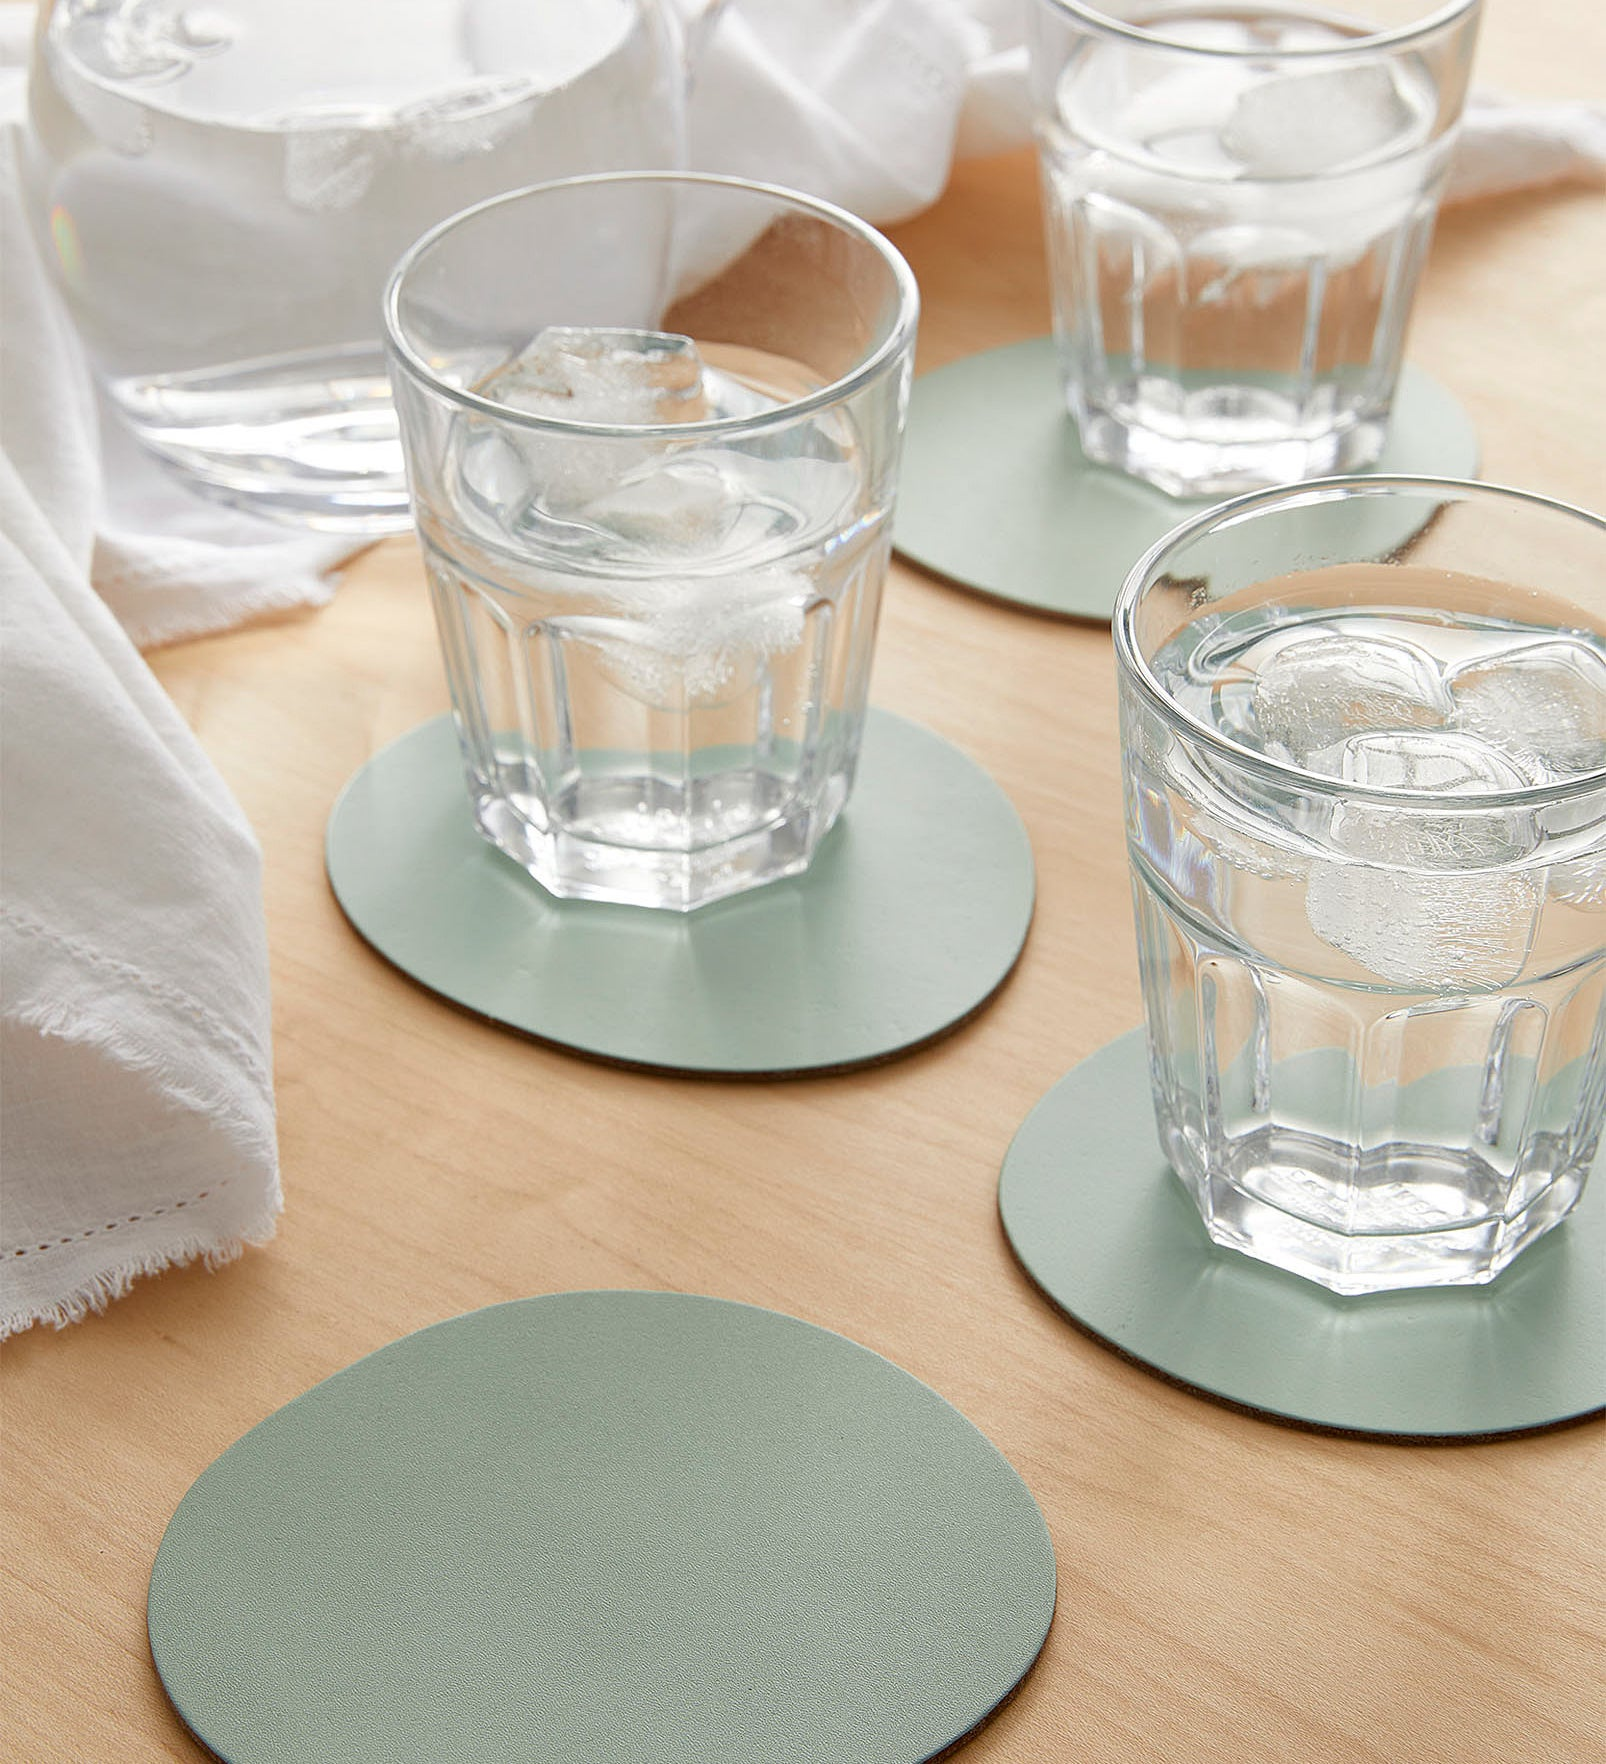 The coasters with glasses of water on them